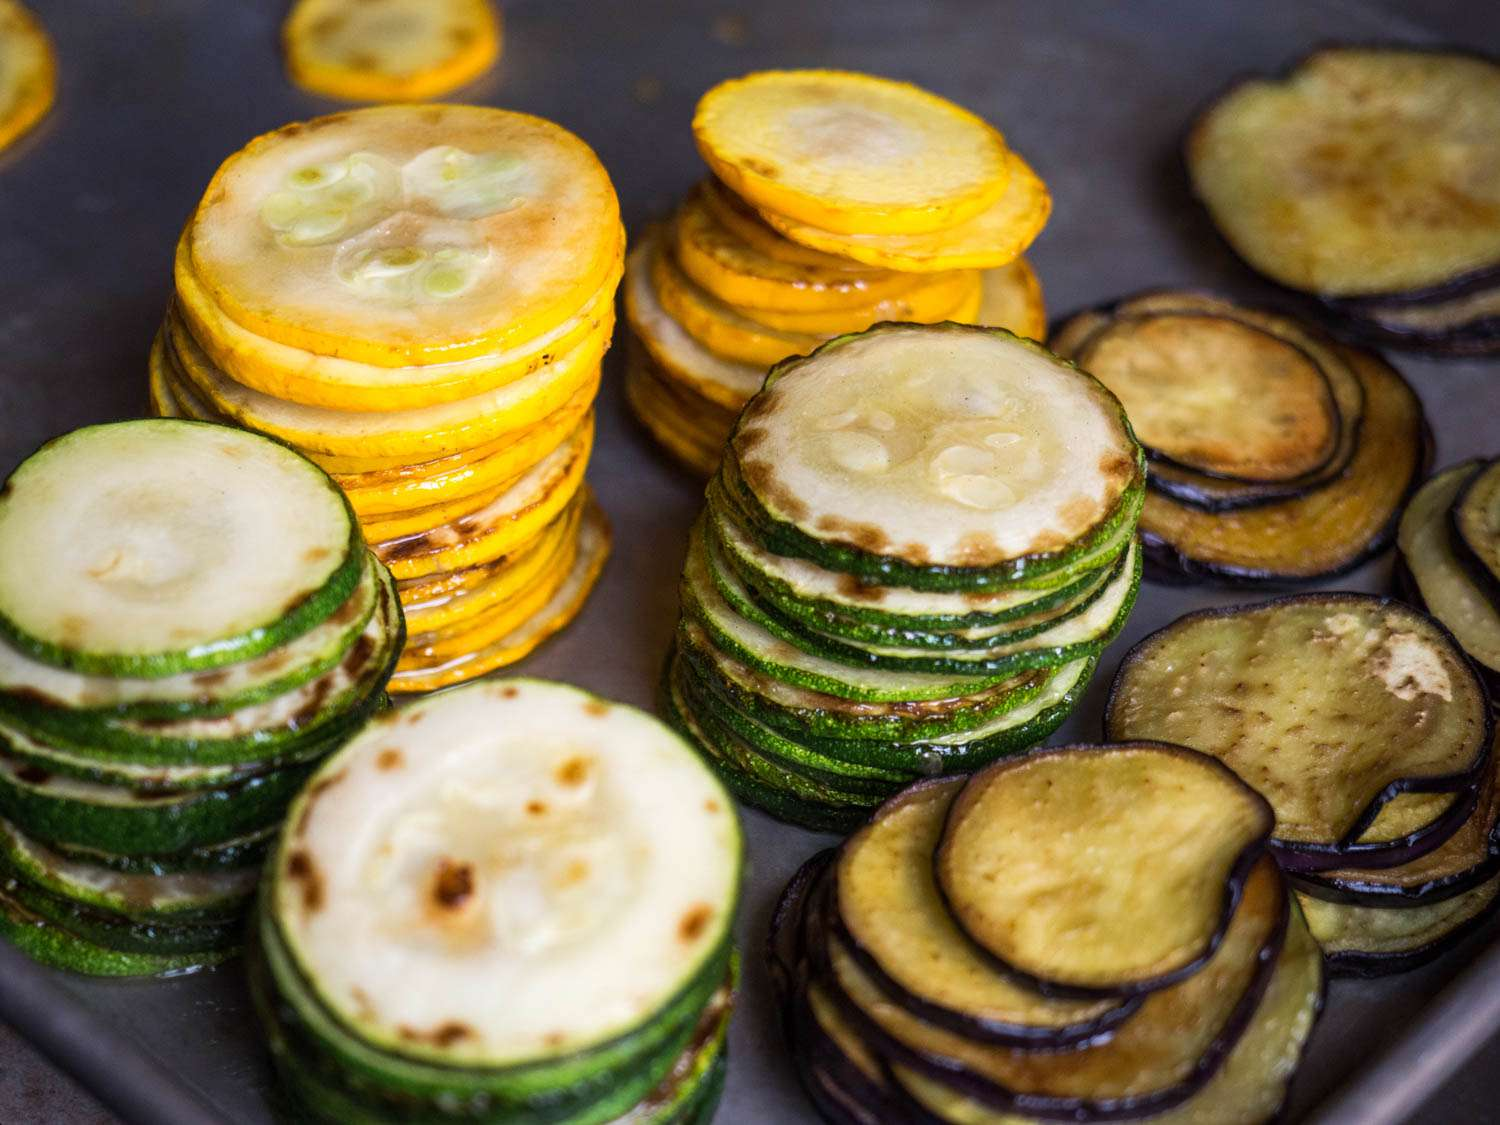 Stacks of cooked zucchini, yellow squash, and eggplant slices.